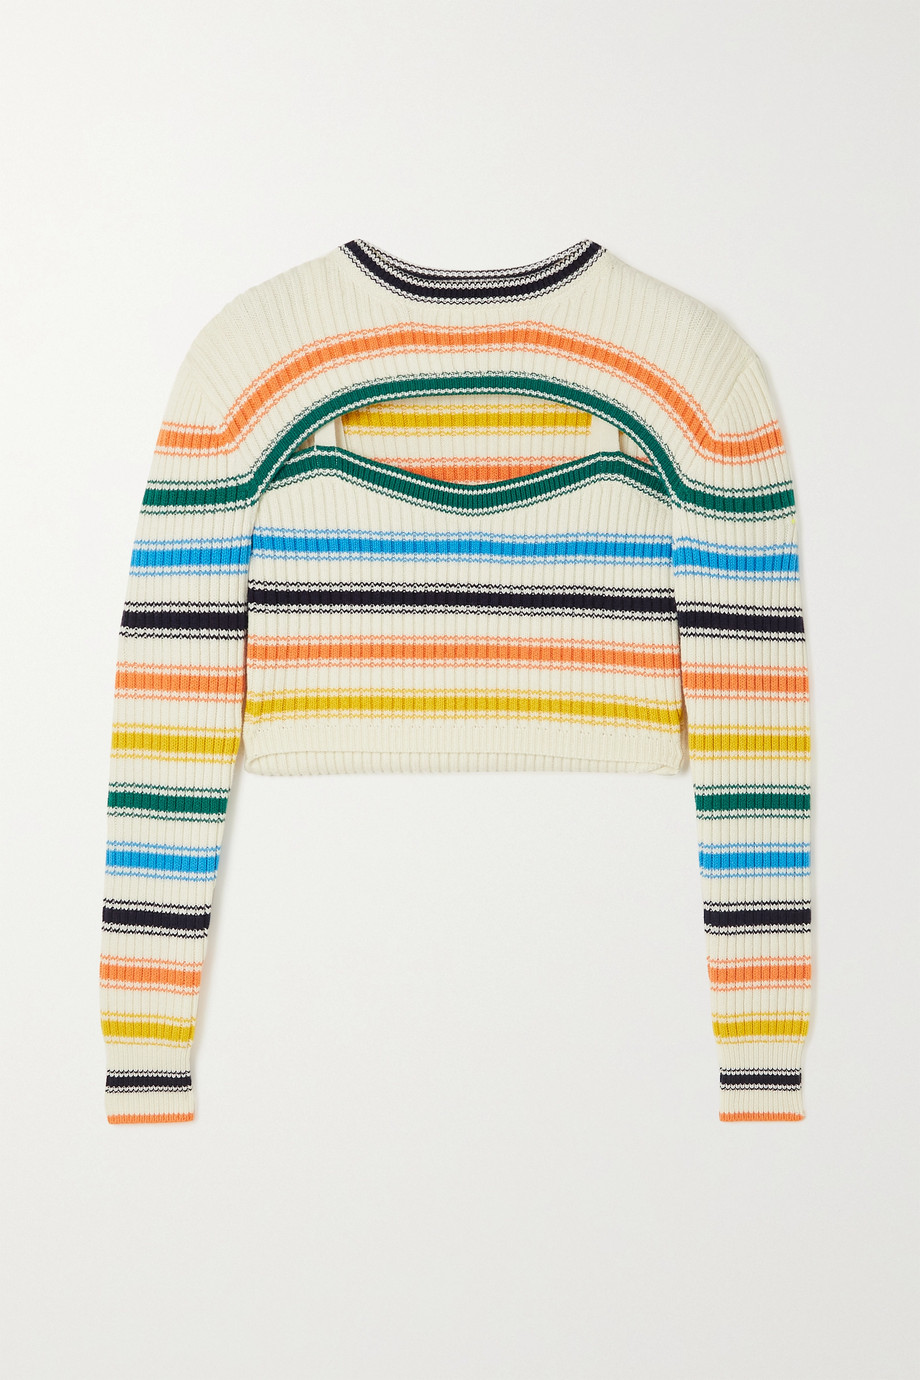 ROSIE ASSOULIN Thousand-In-One-Ways convertible cropped striped ribbed merino wool-blend sweater